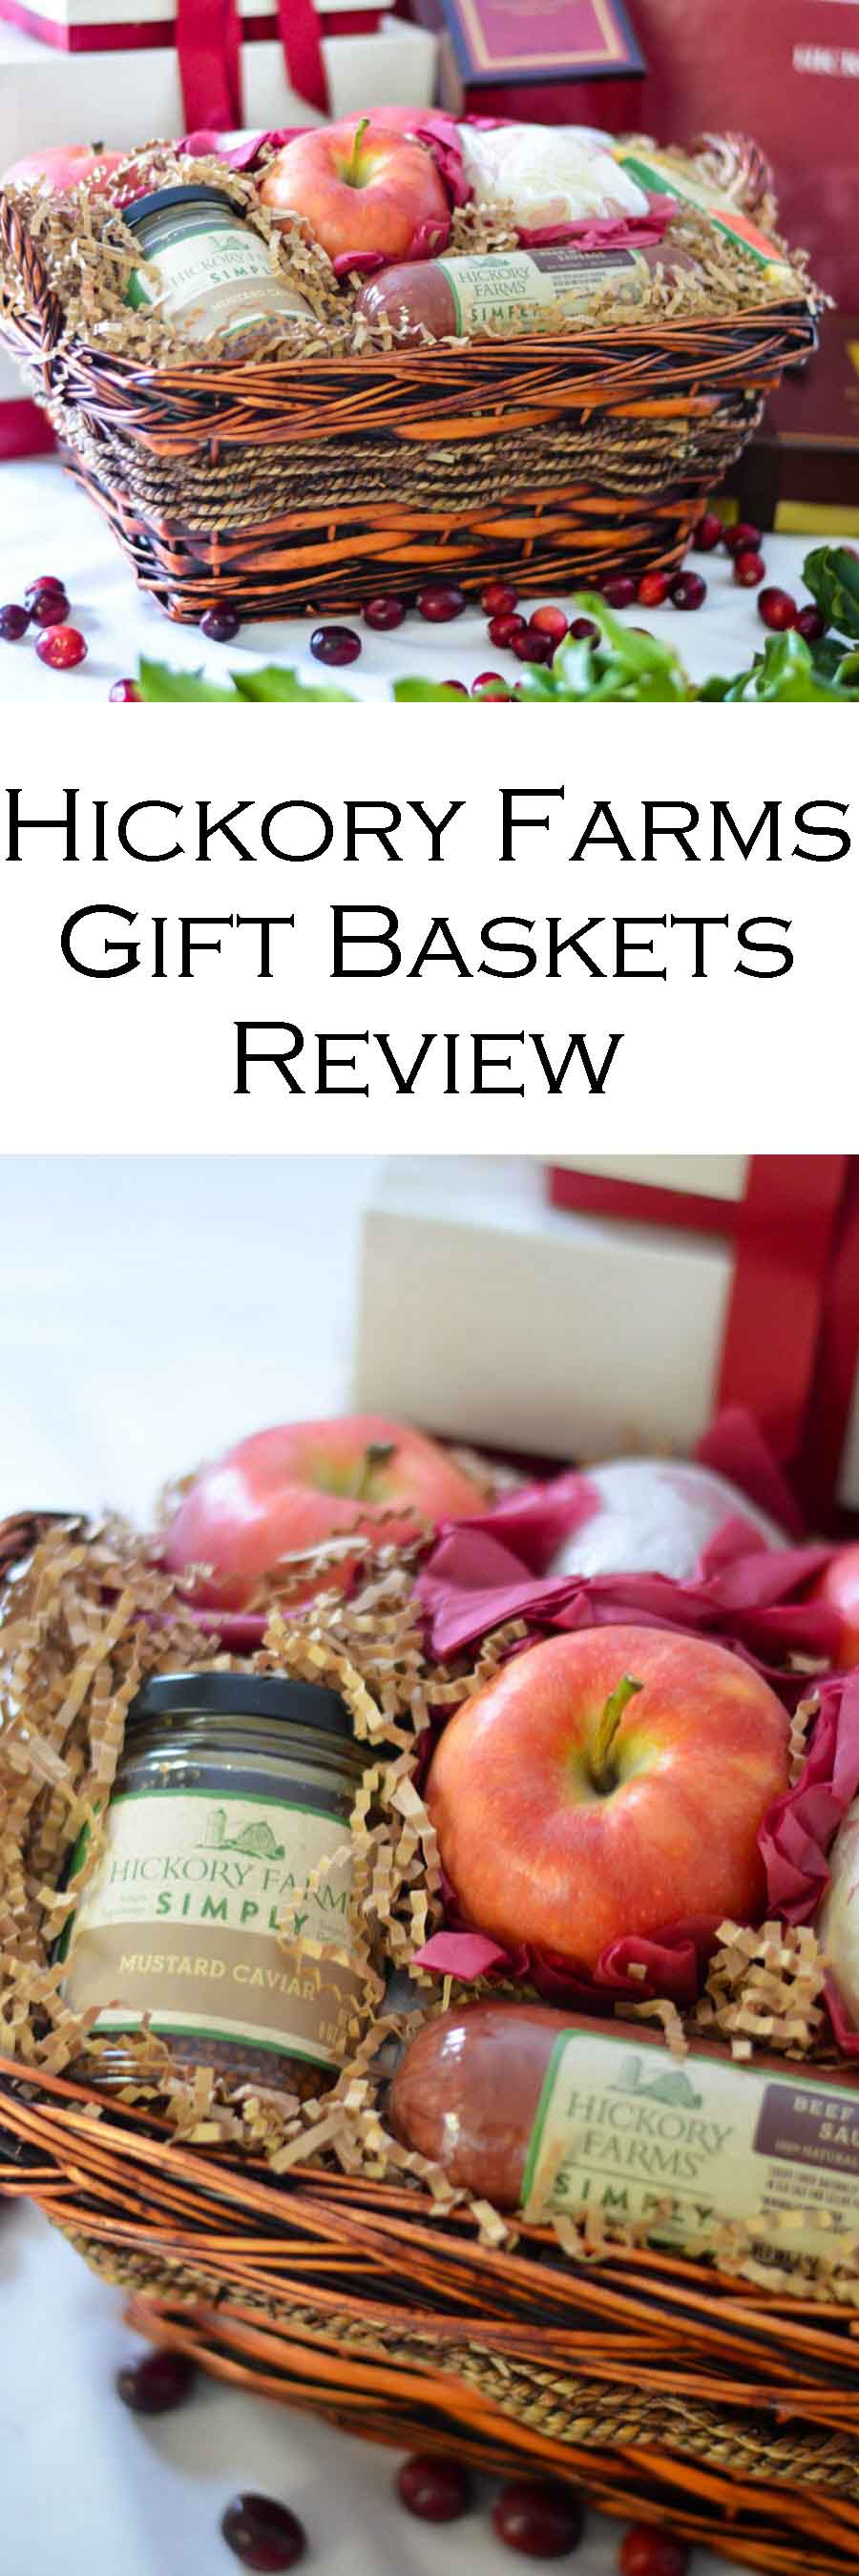 Hickory Farms Gift Baskets Review #christmas #holidays #holidayseason #christmasgifts #giftguide #hickoryfarms #lifestyleblog #lifestyle #merrychristmas #happyholidays #giftgiving #giftideas #familygifts #foodgifts